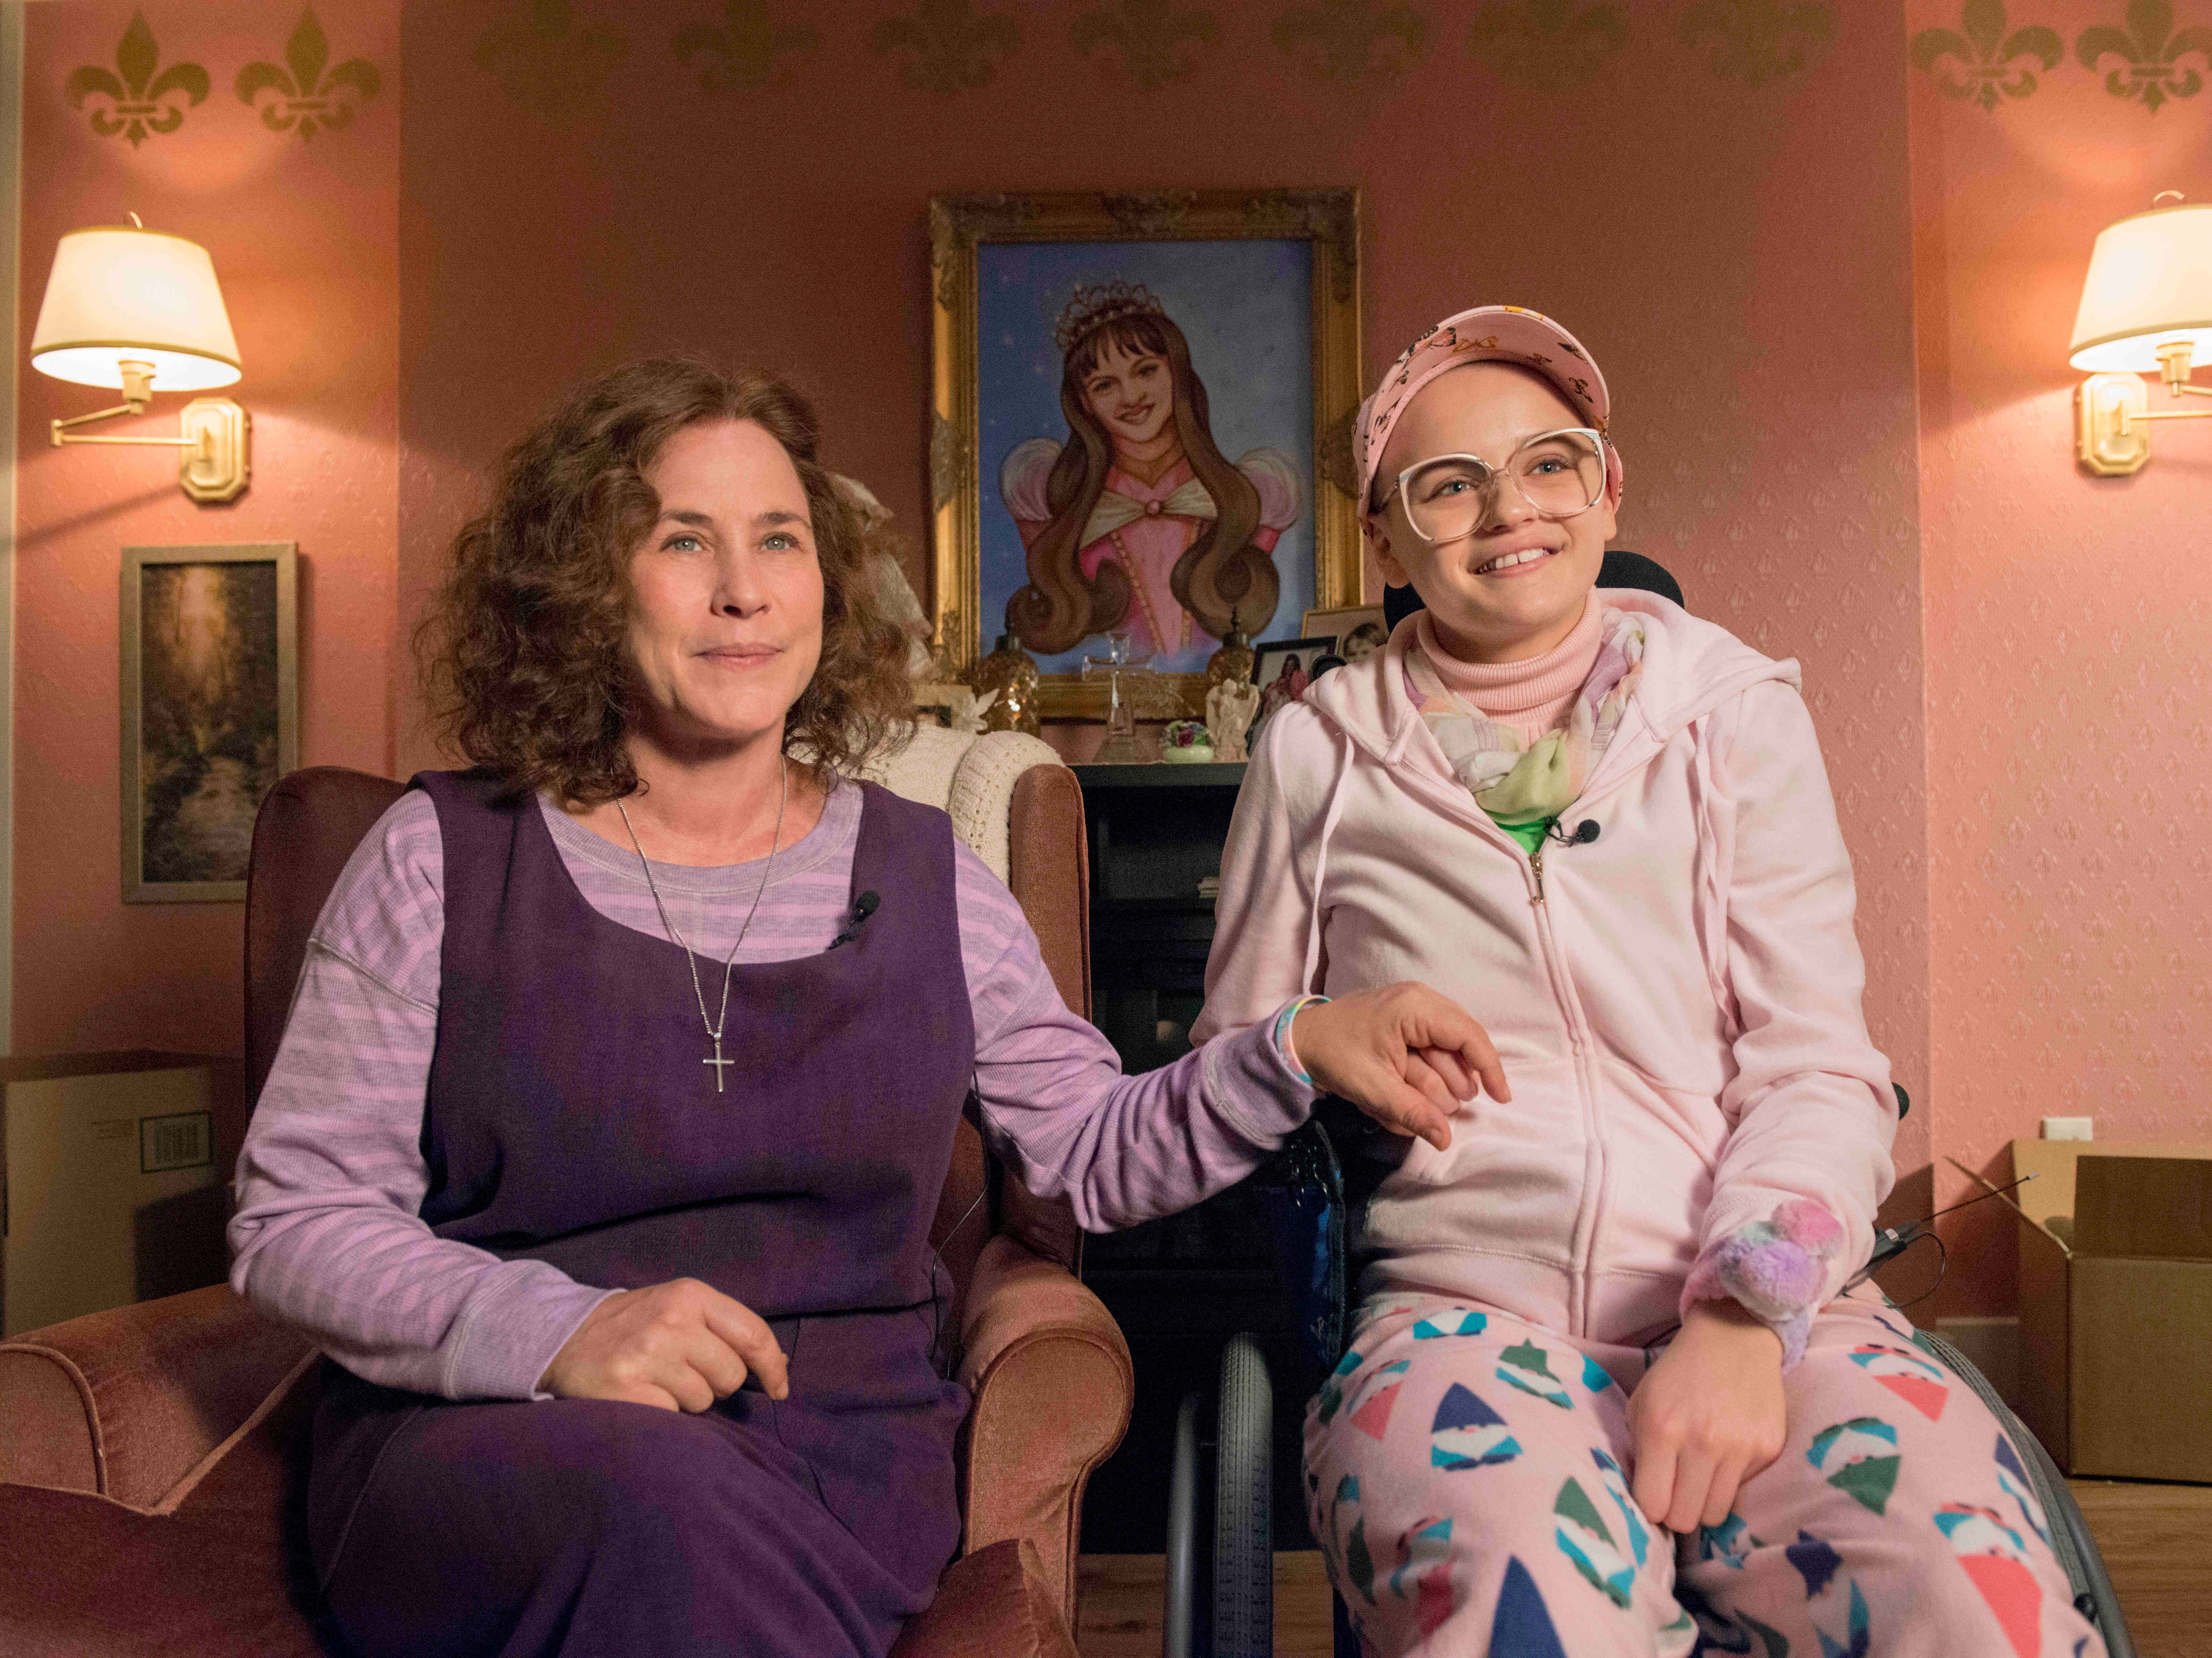 """The Act "" Dee Dee Blanchard (Patricia Arquette) and Gypsy Rose Blanchard (Joey King) shown."